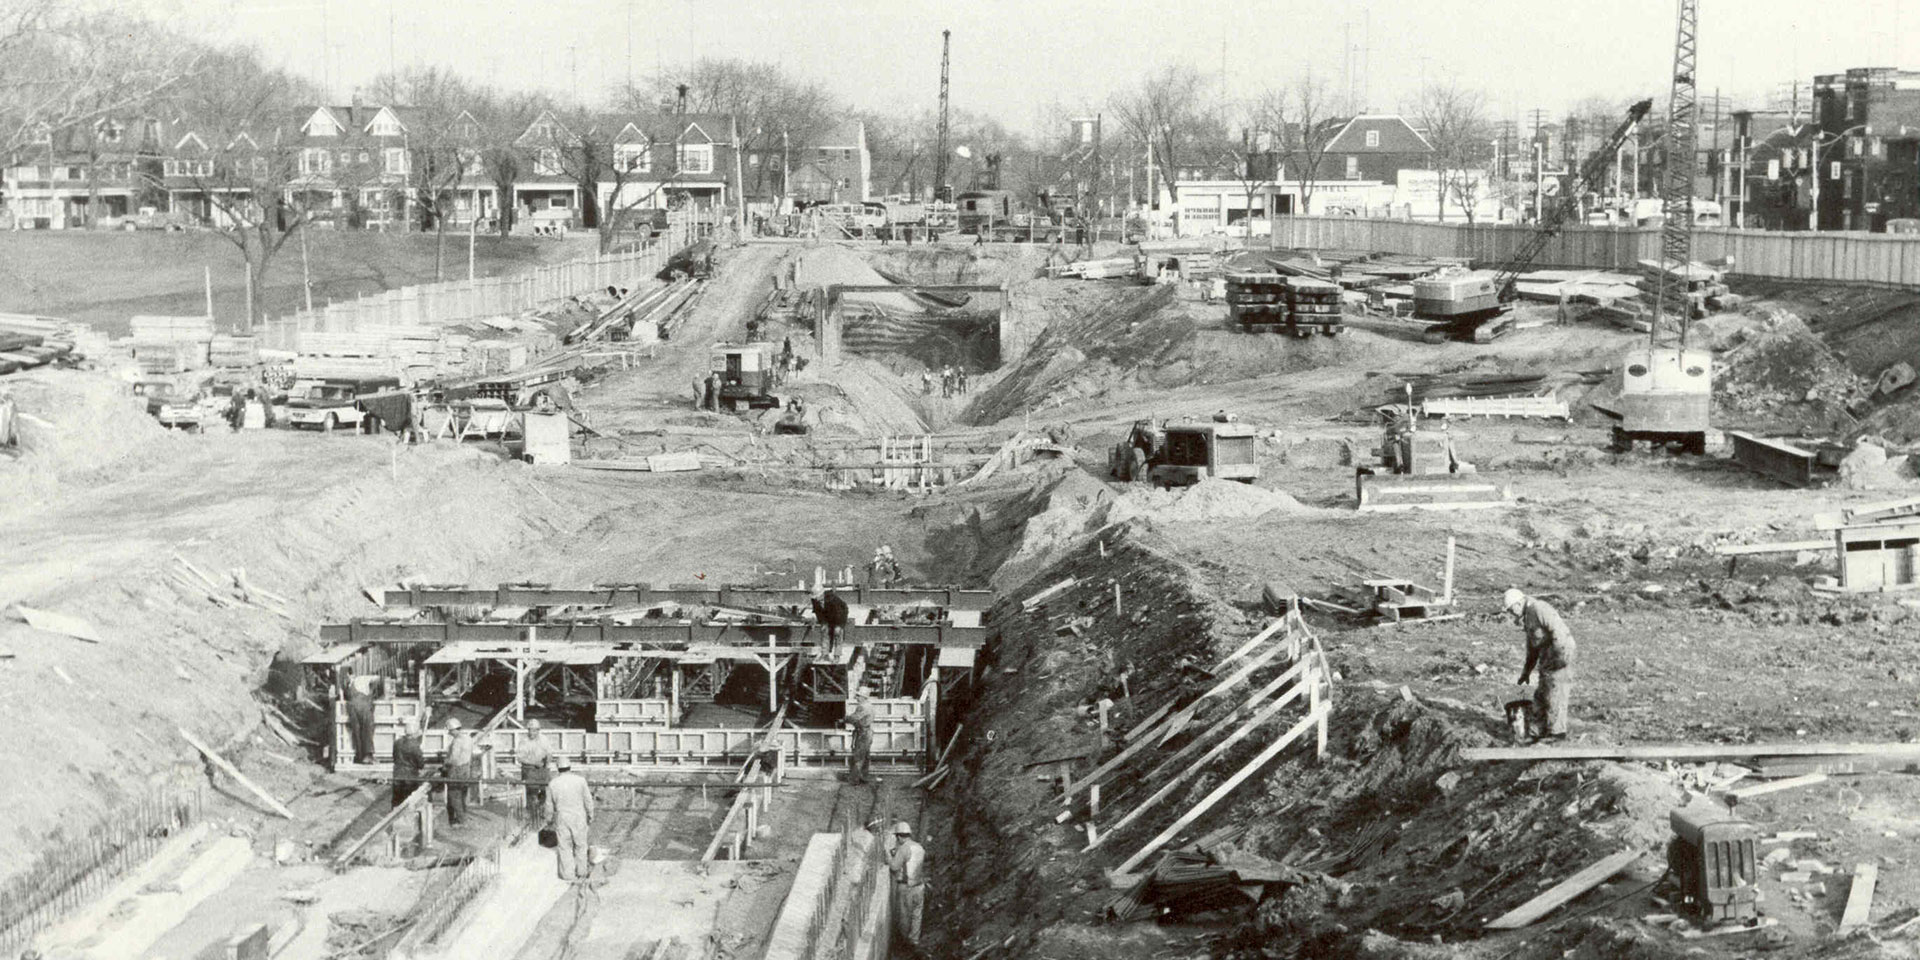 Bloor Danforth Subway Line 1963